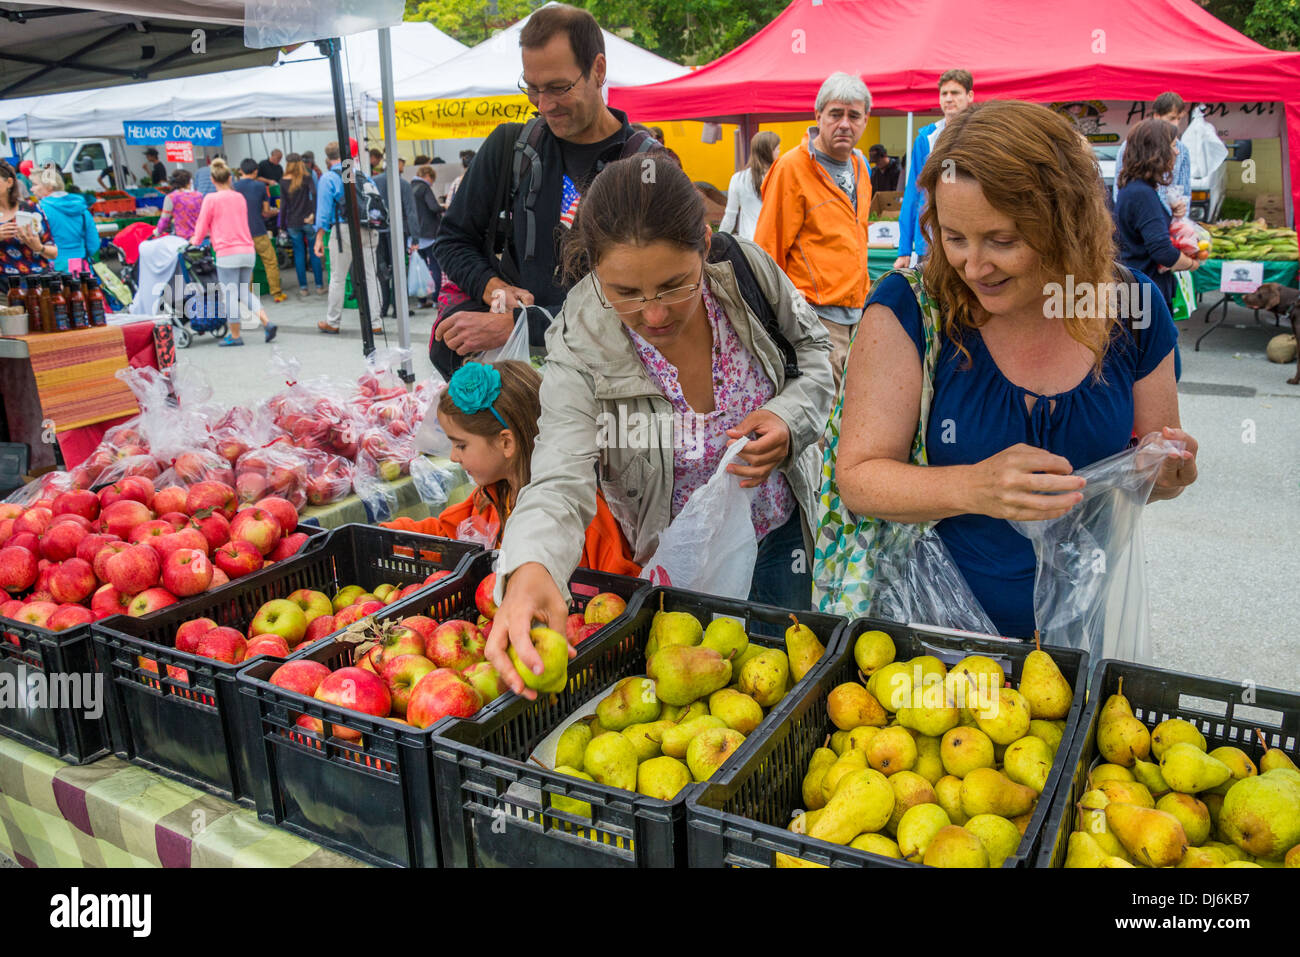 Women buying pears, Kitsilano Farmers Market, Vancouver, British Columbia, Canada - Stock Image